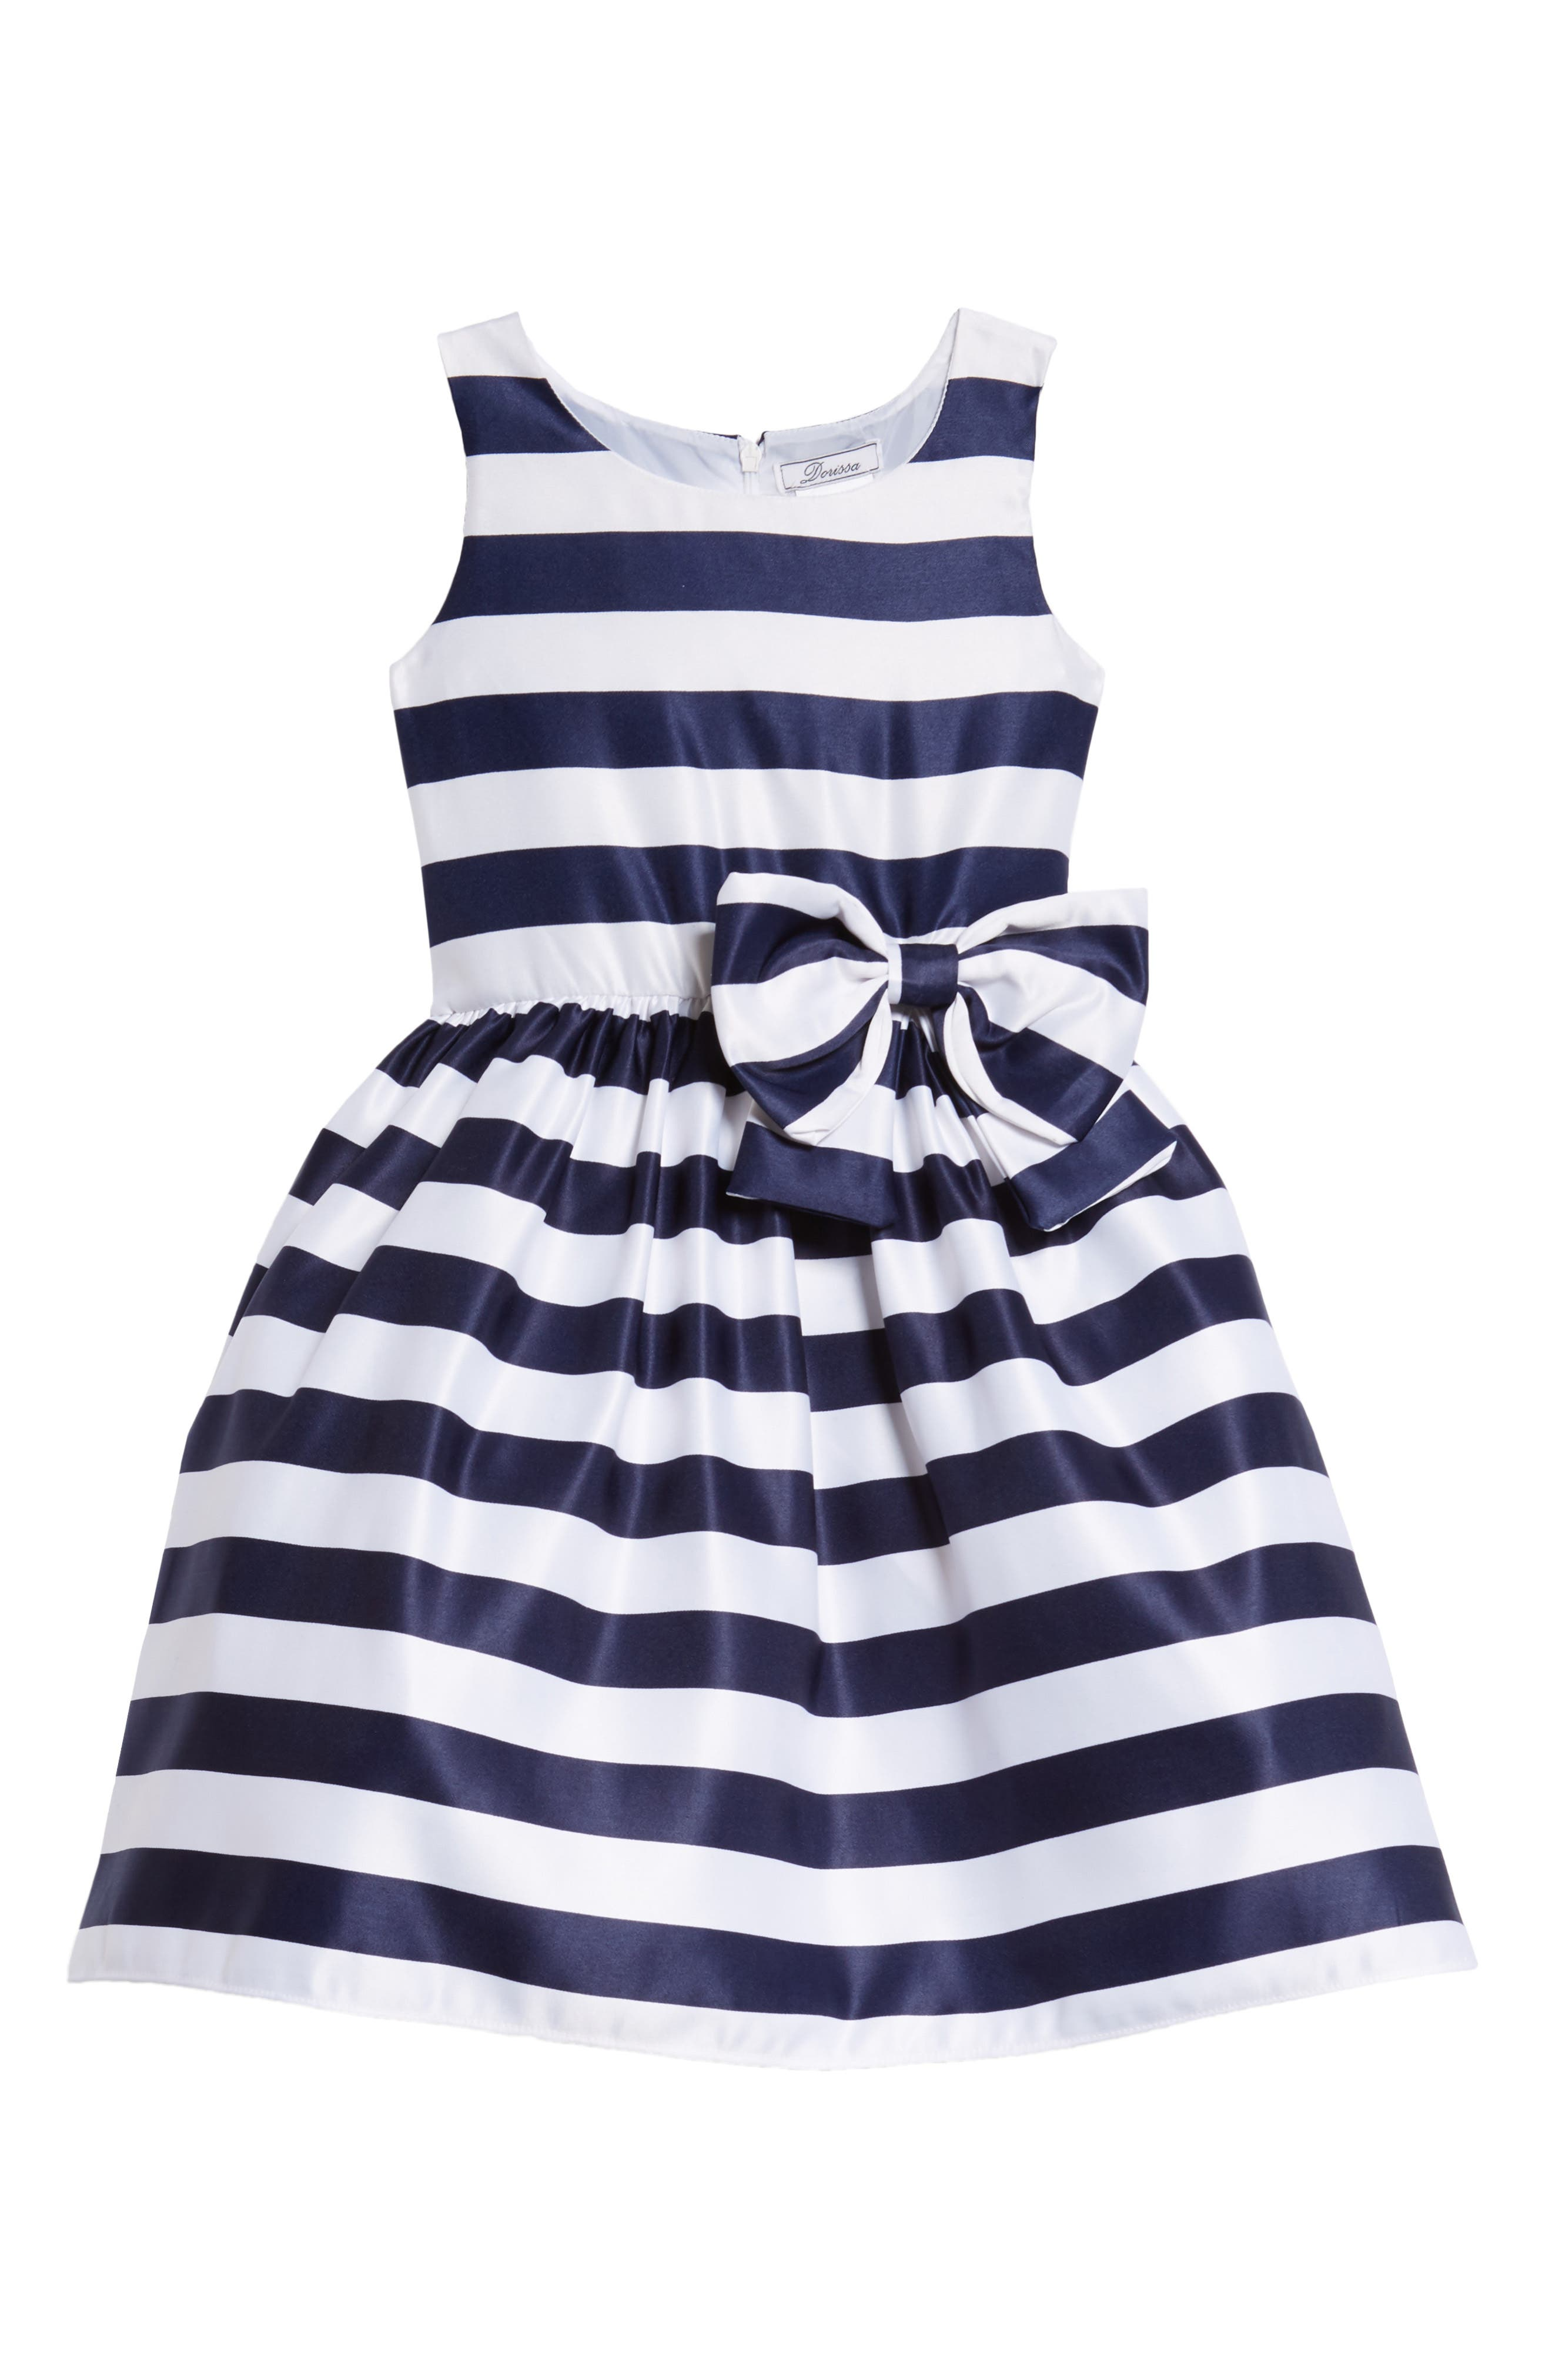 Dorissa Tara Stripe Party Dress (Toddler Girls, Little Girls & Big Girls)